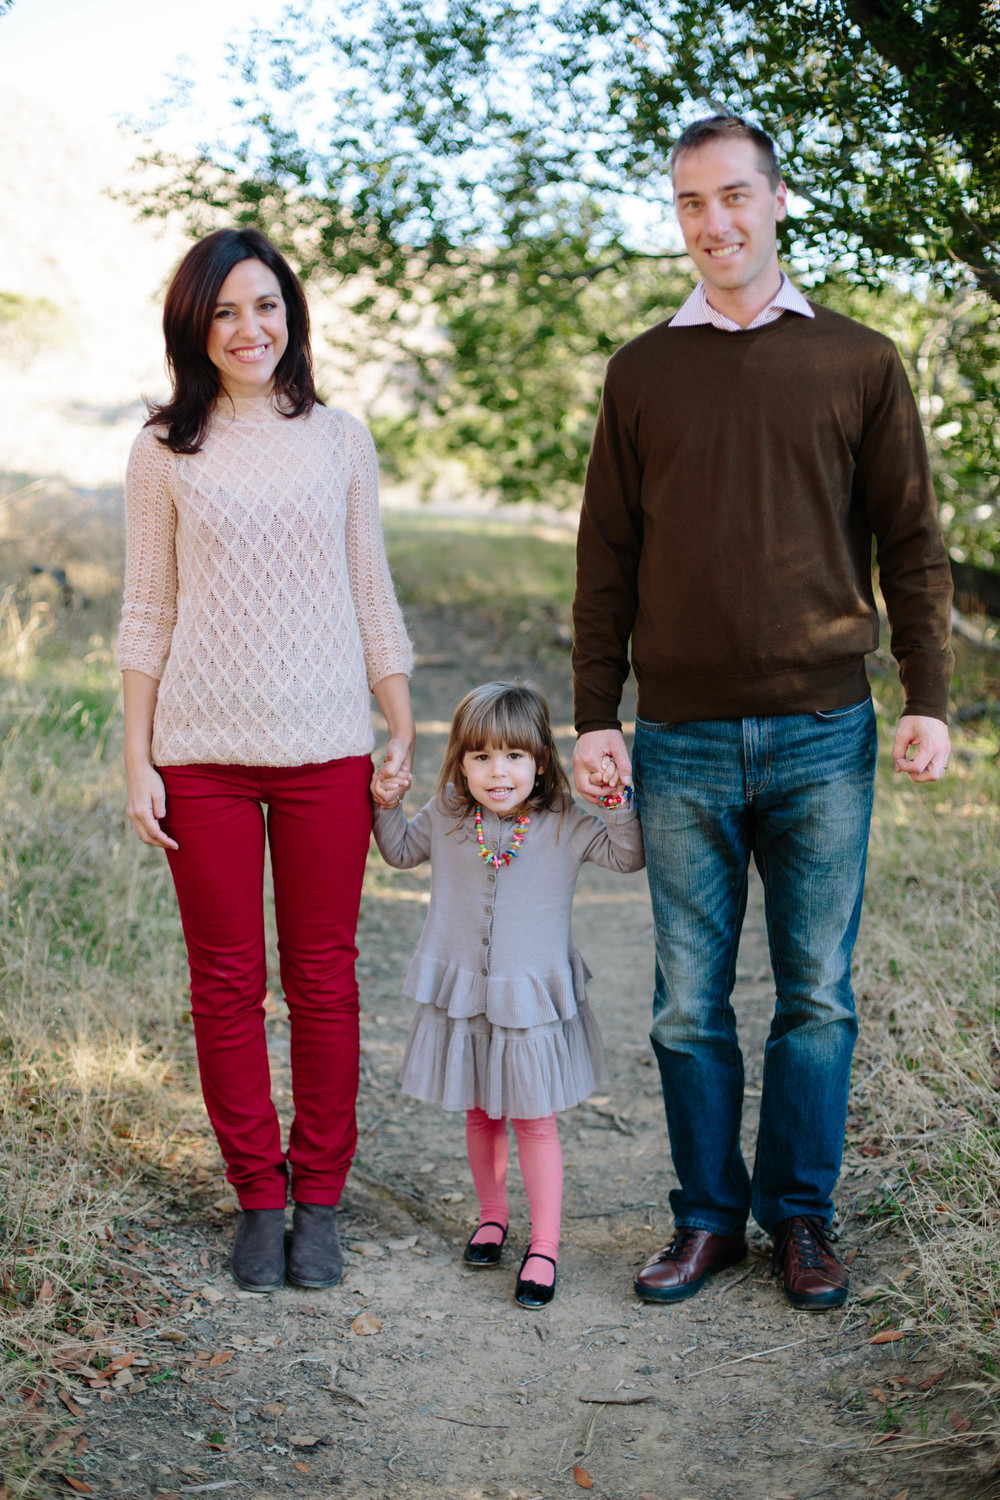 Family Portrait Photograher Anise LeAnn with family of 3 in Marin County, California.